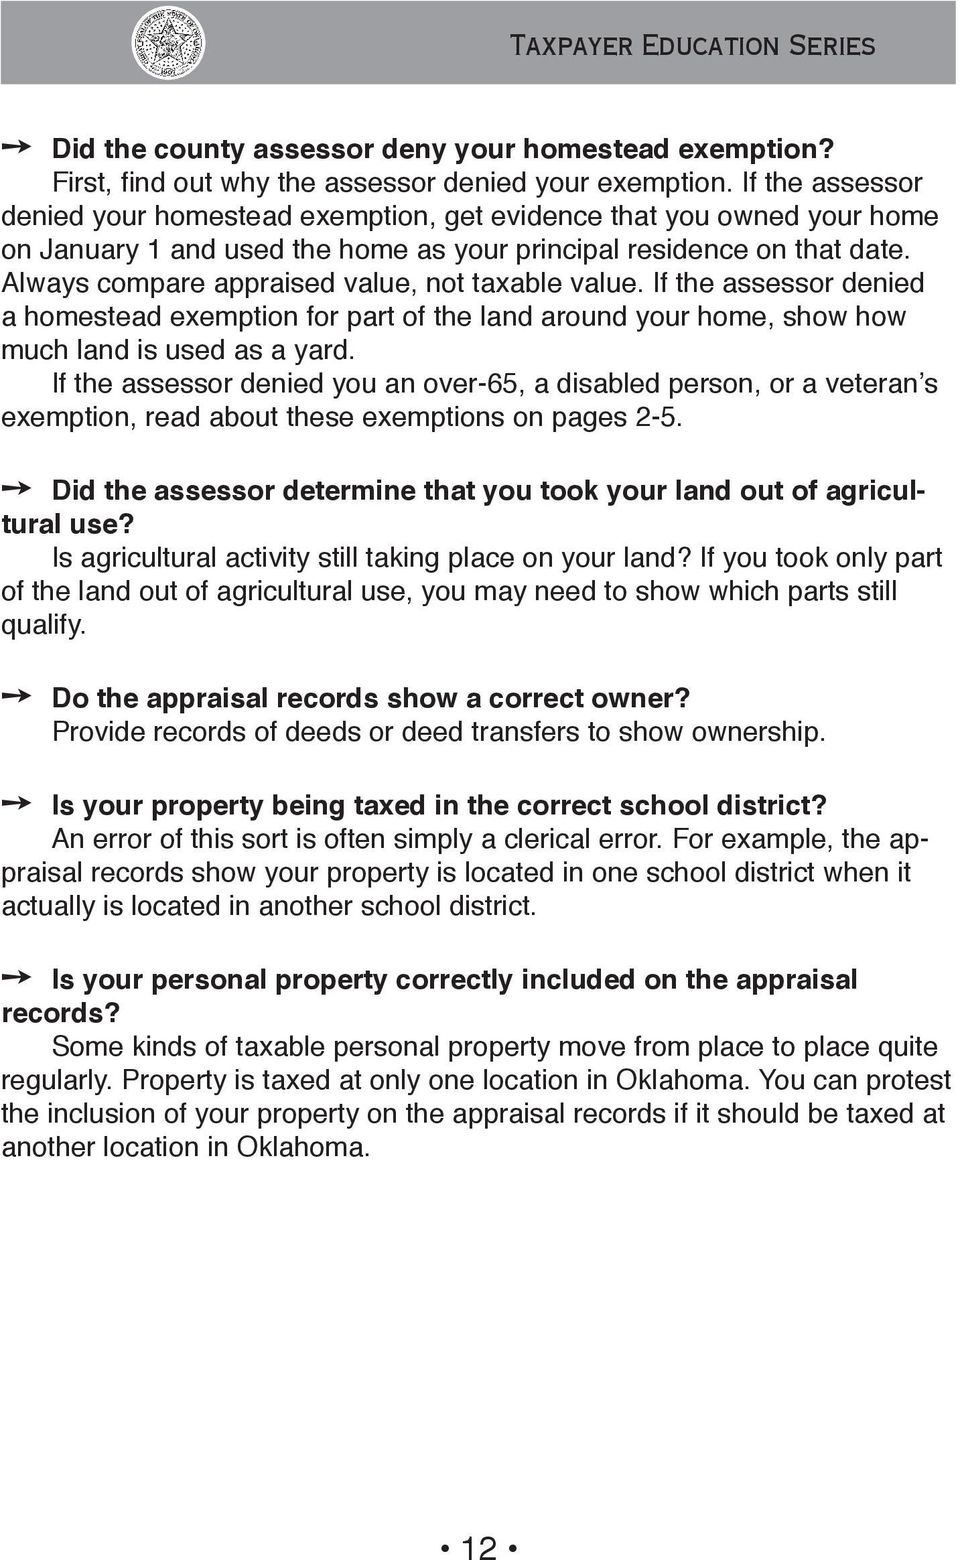 Always compare appraised value, not taxable value. If the assessor denied a homestead exemption for part of the land around your home, show how much land is used as a yard.